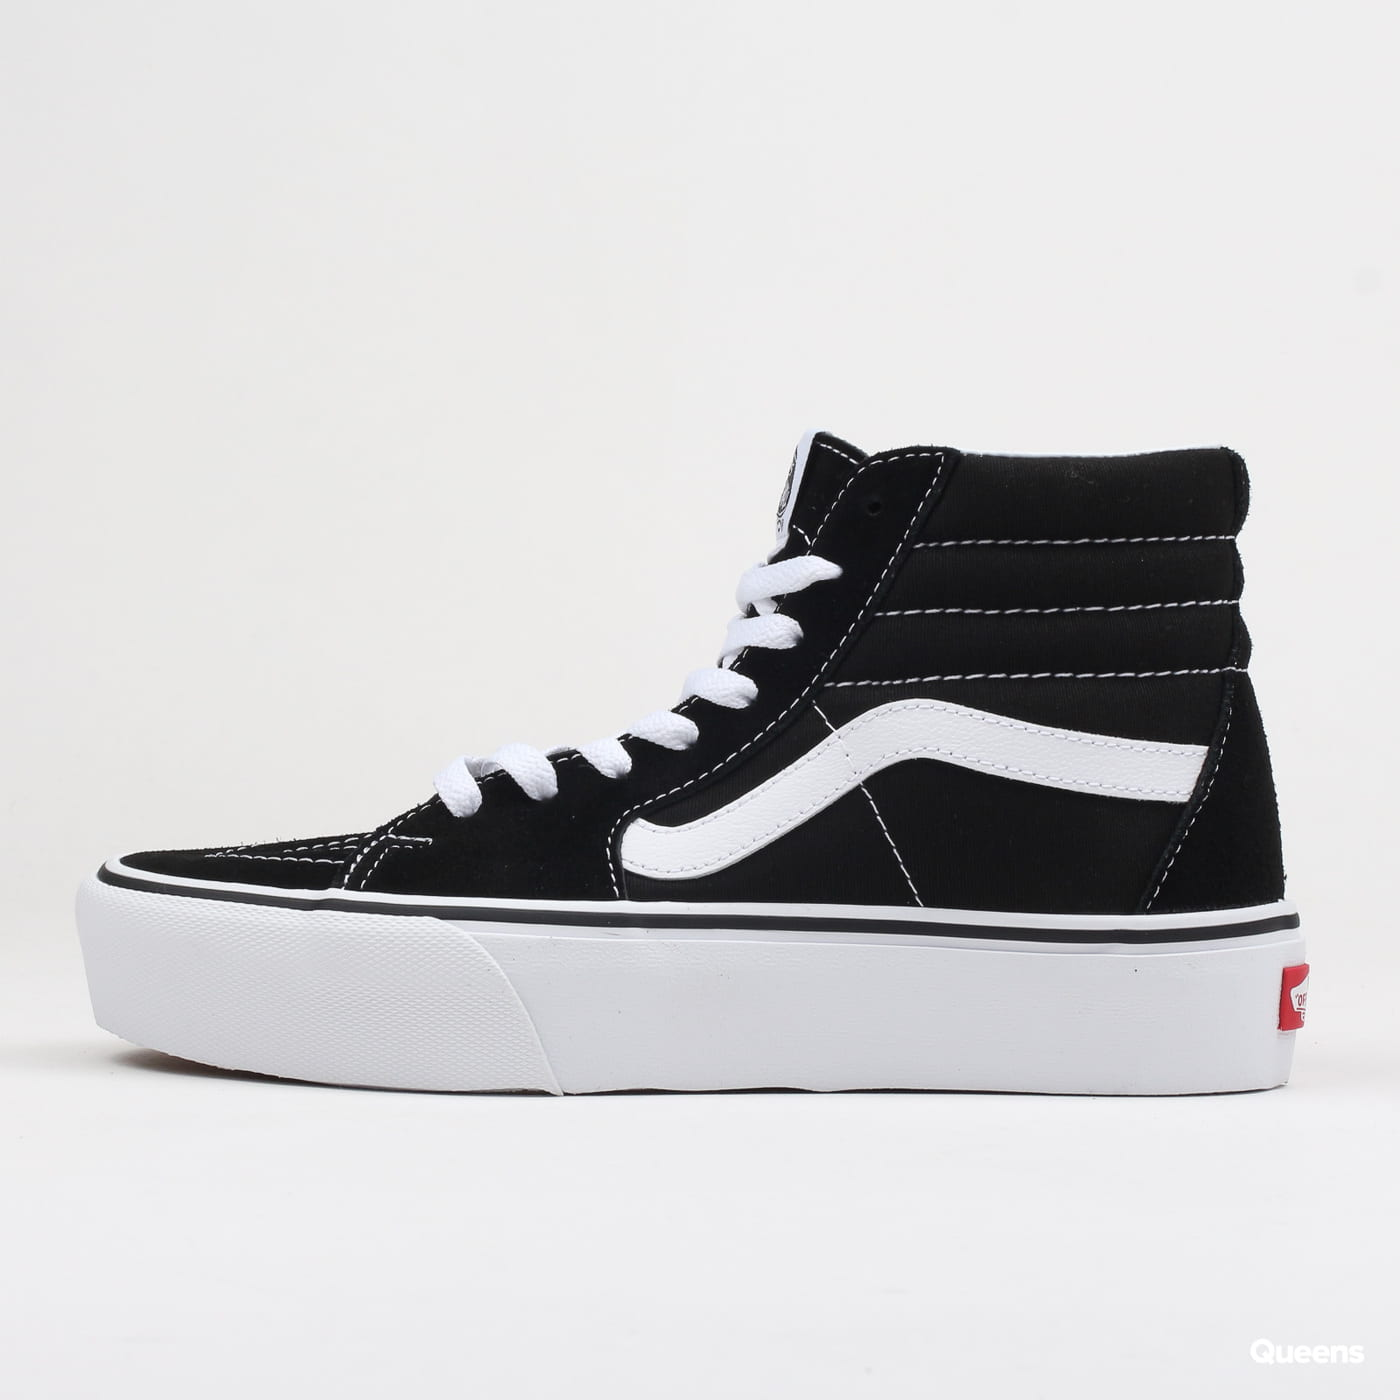 Vans SK8-HI Platform 2 black / true white